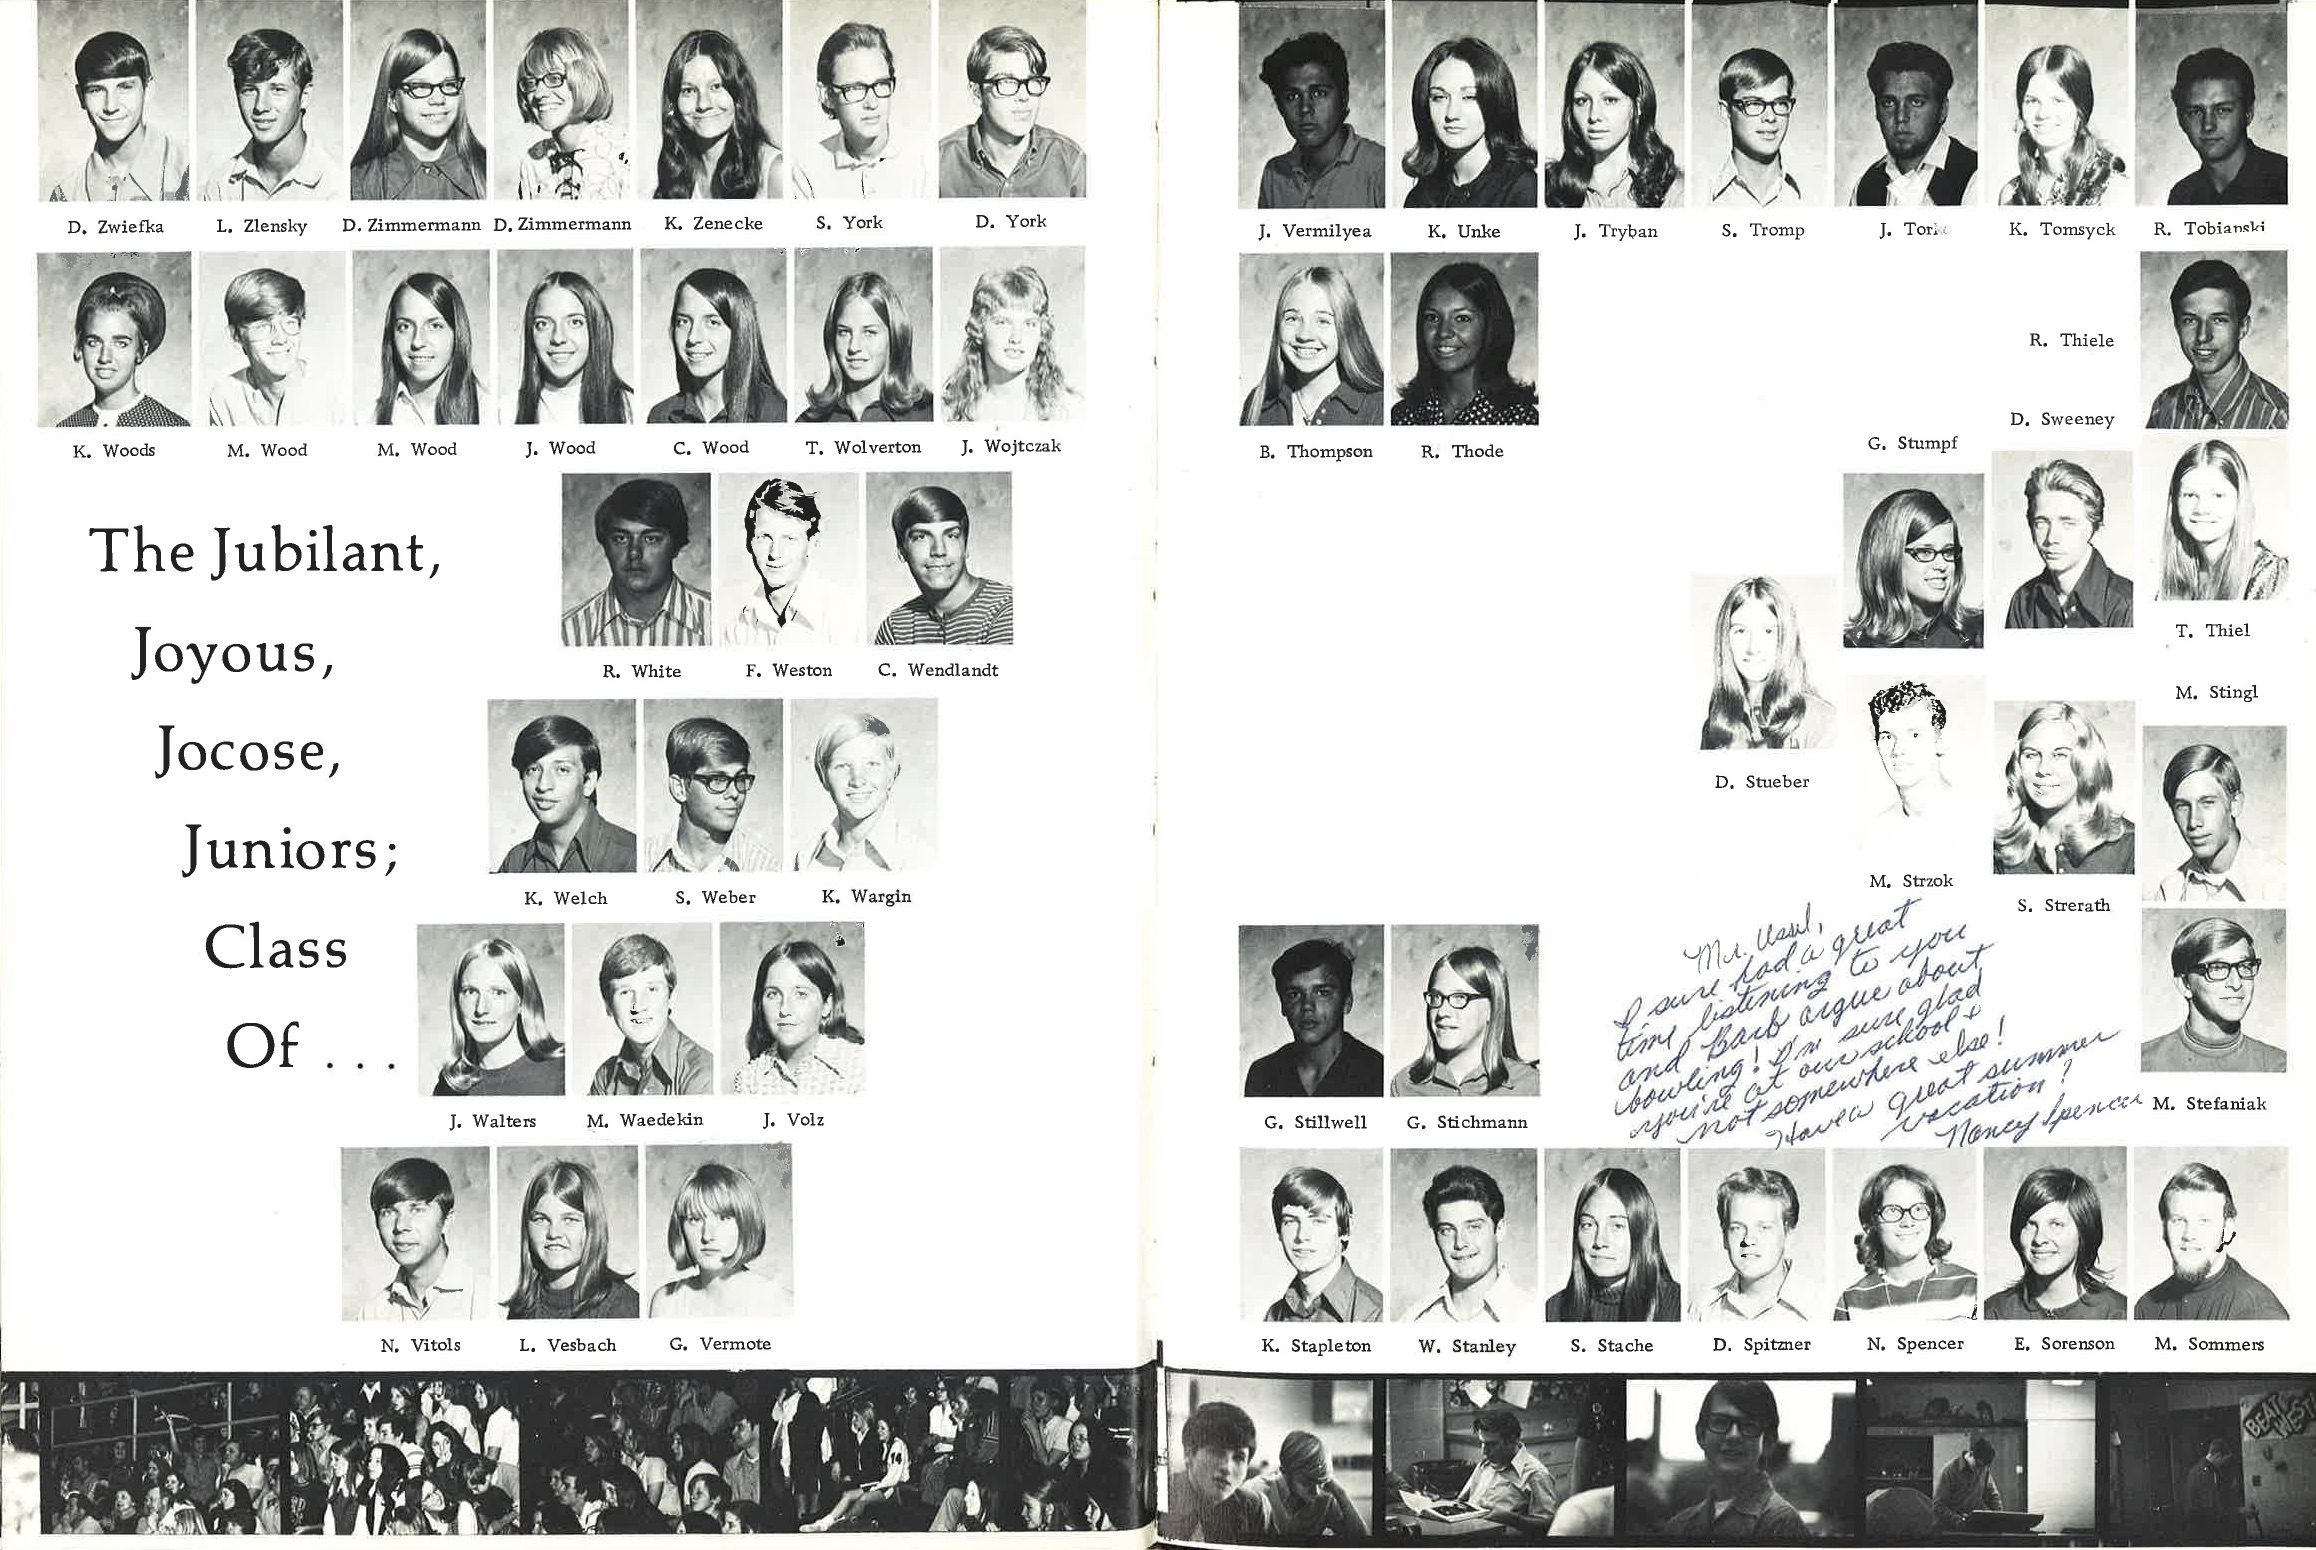 1972_Yearbook_82-83.jpg